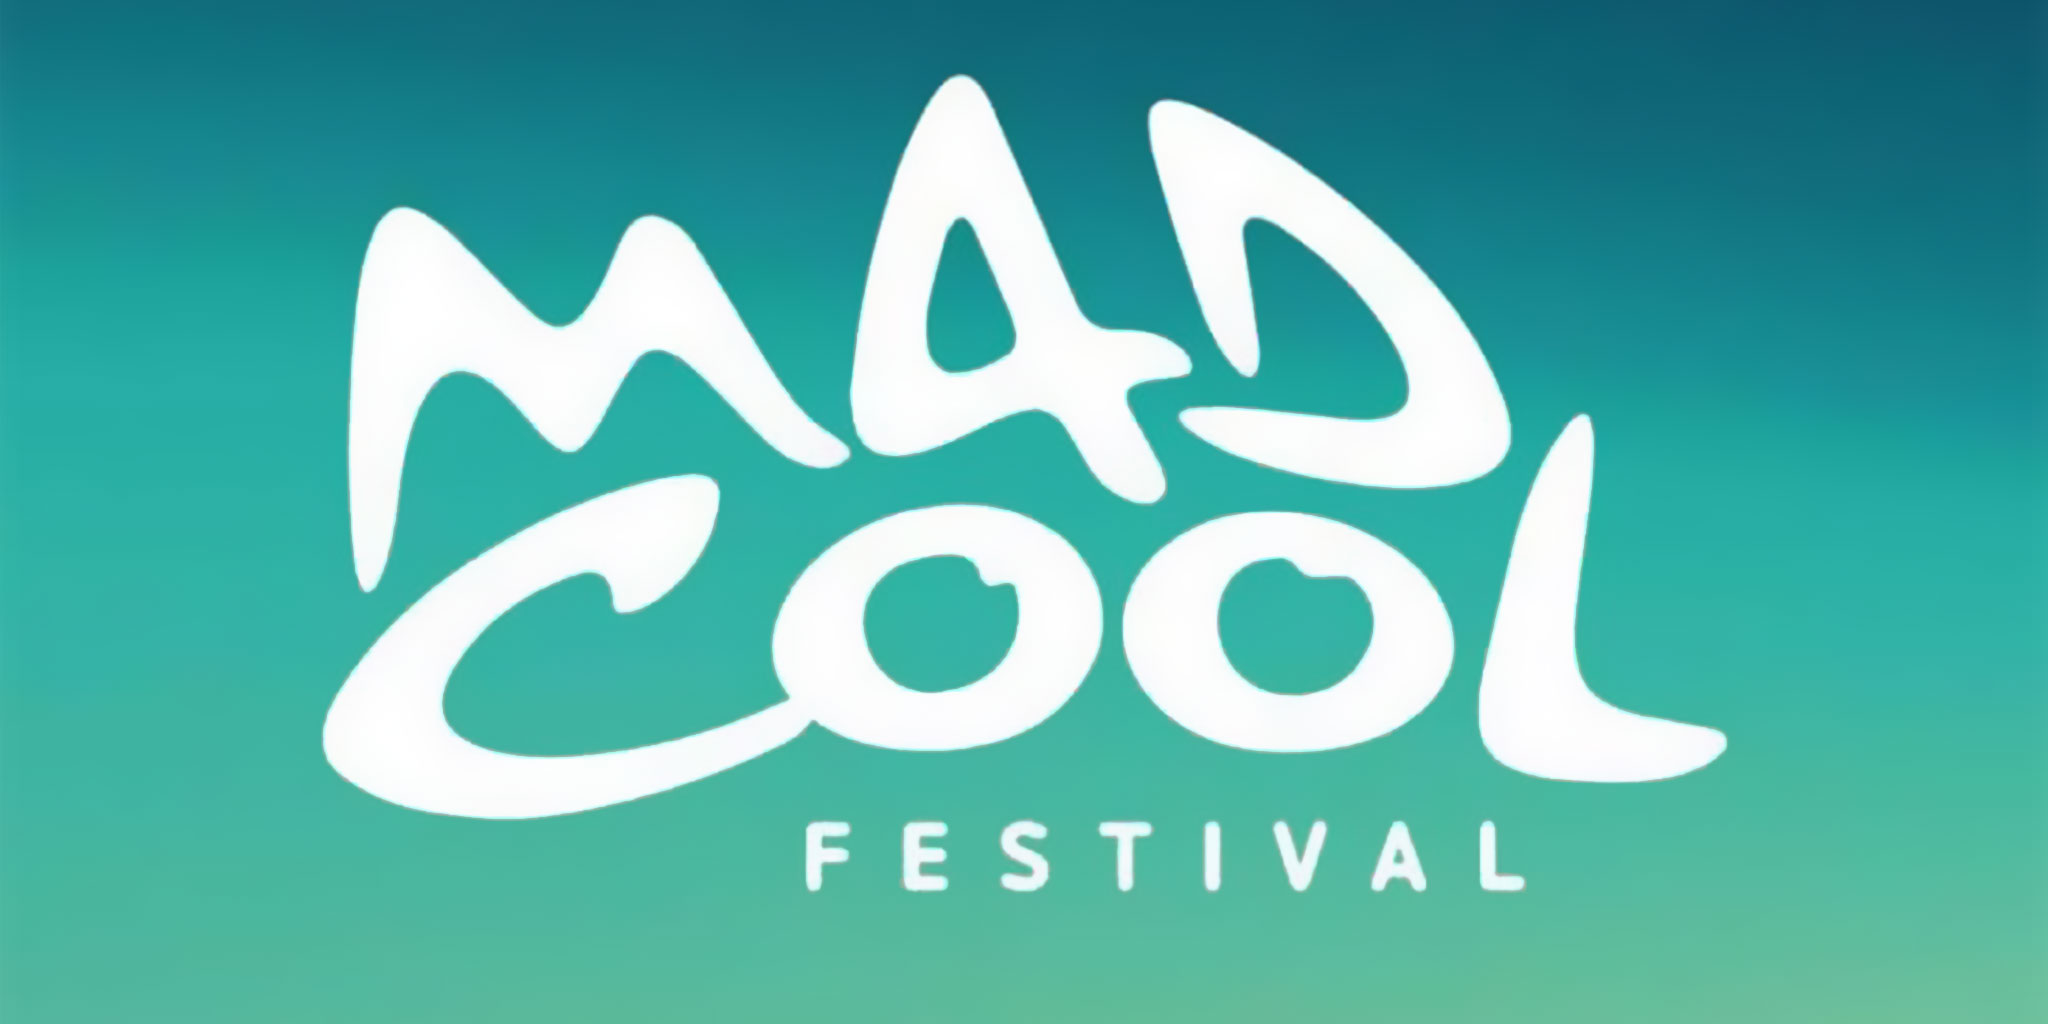 Sobre Mad Cool…